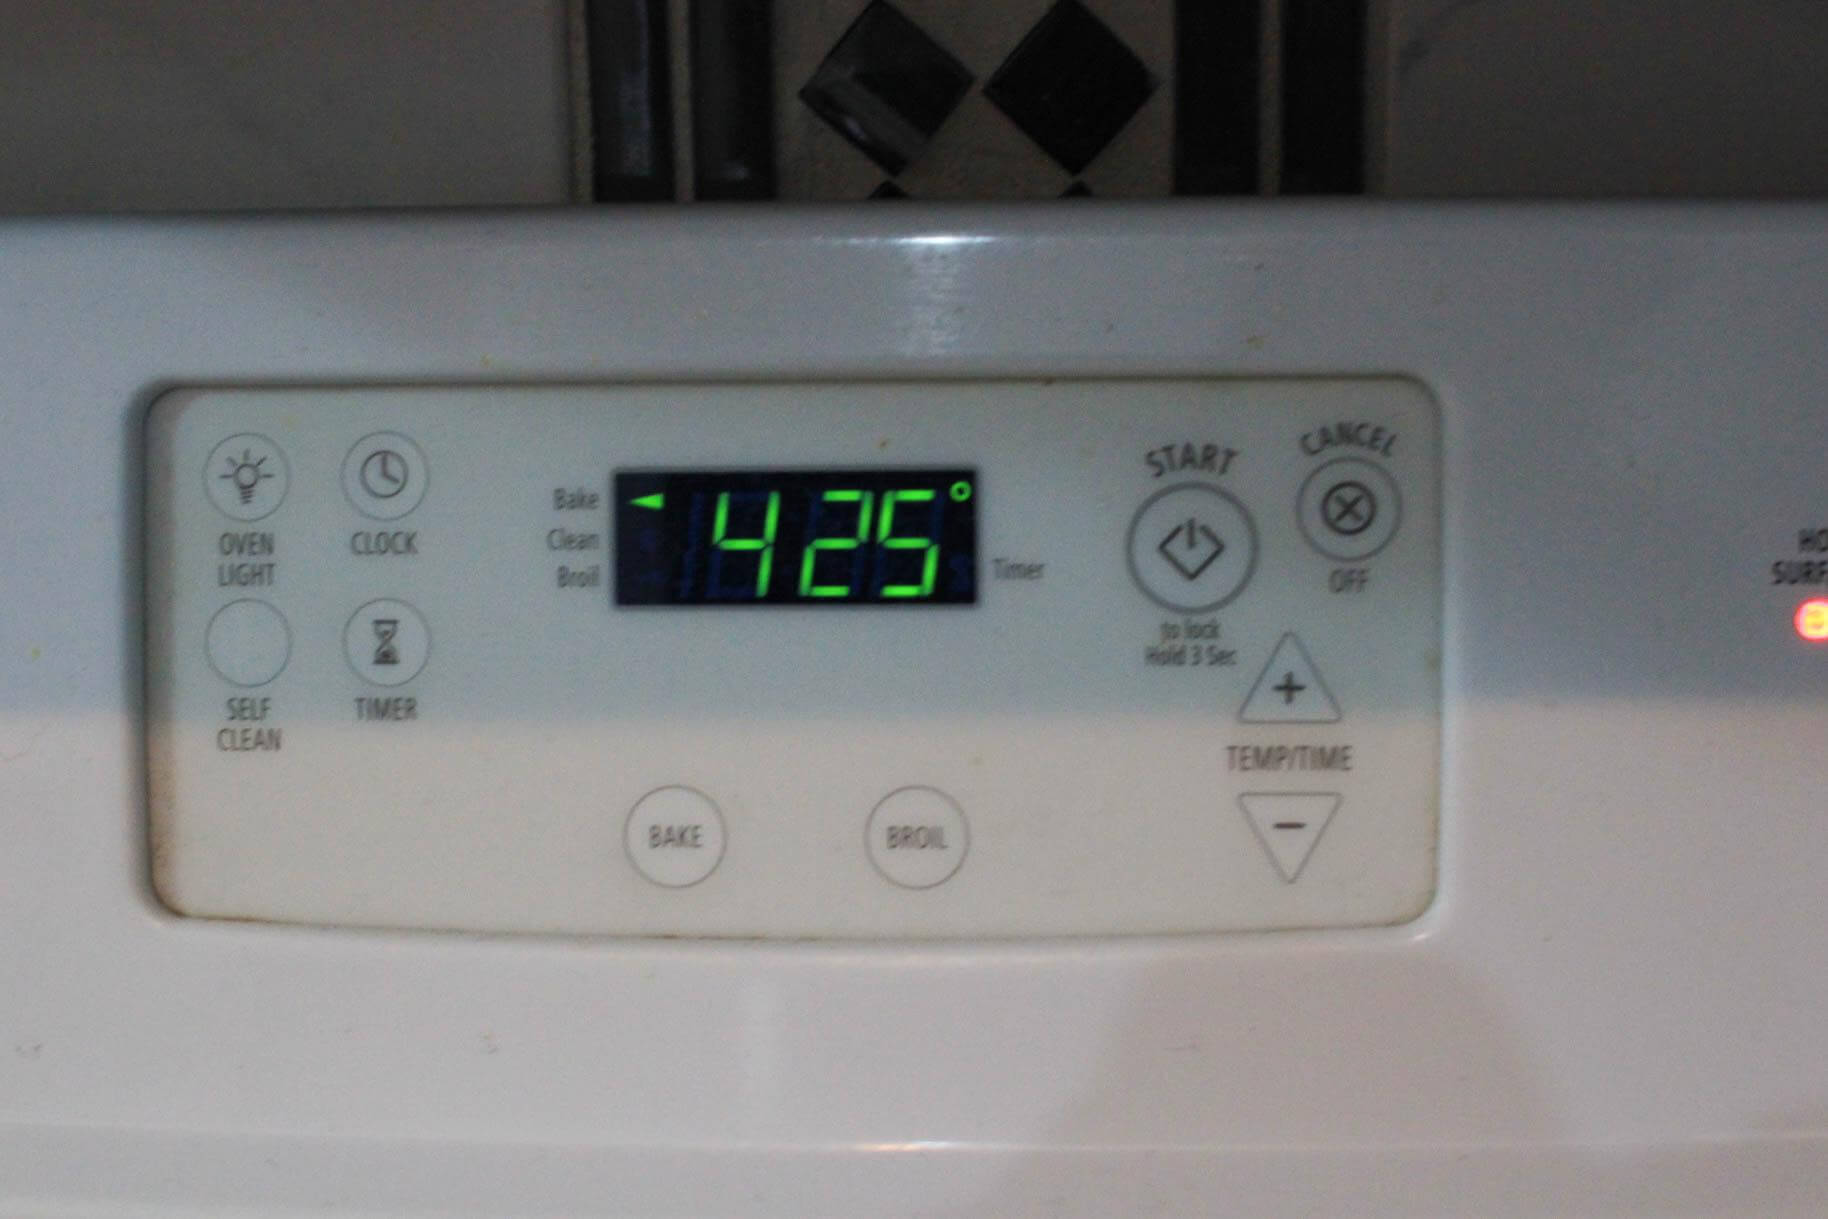 Oven at 425 F